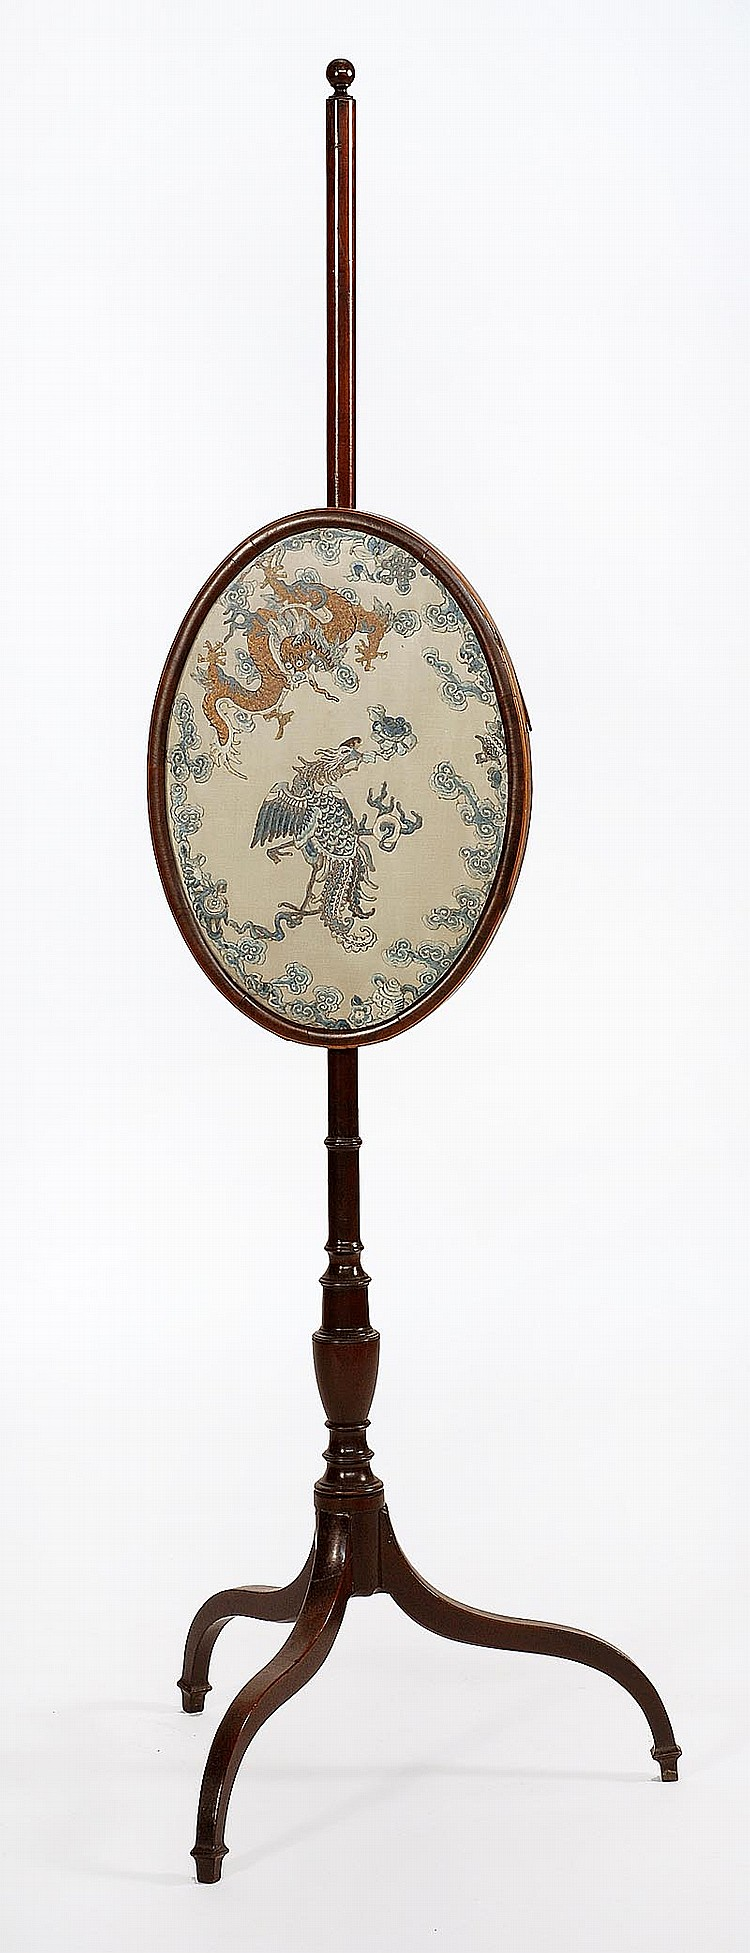 POLE SCREEN In mahogany with Chinese needlework panel depicting a dragon and phoenix in an oval cartouche. Overall height 52